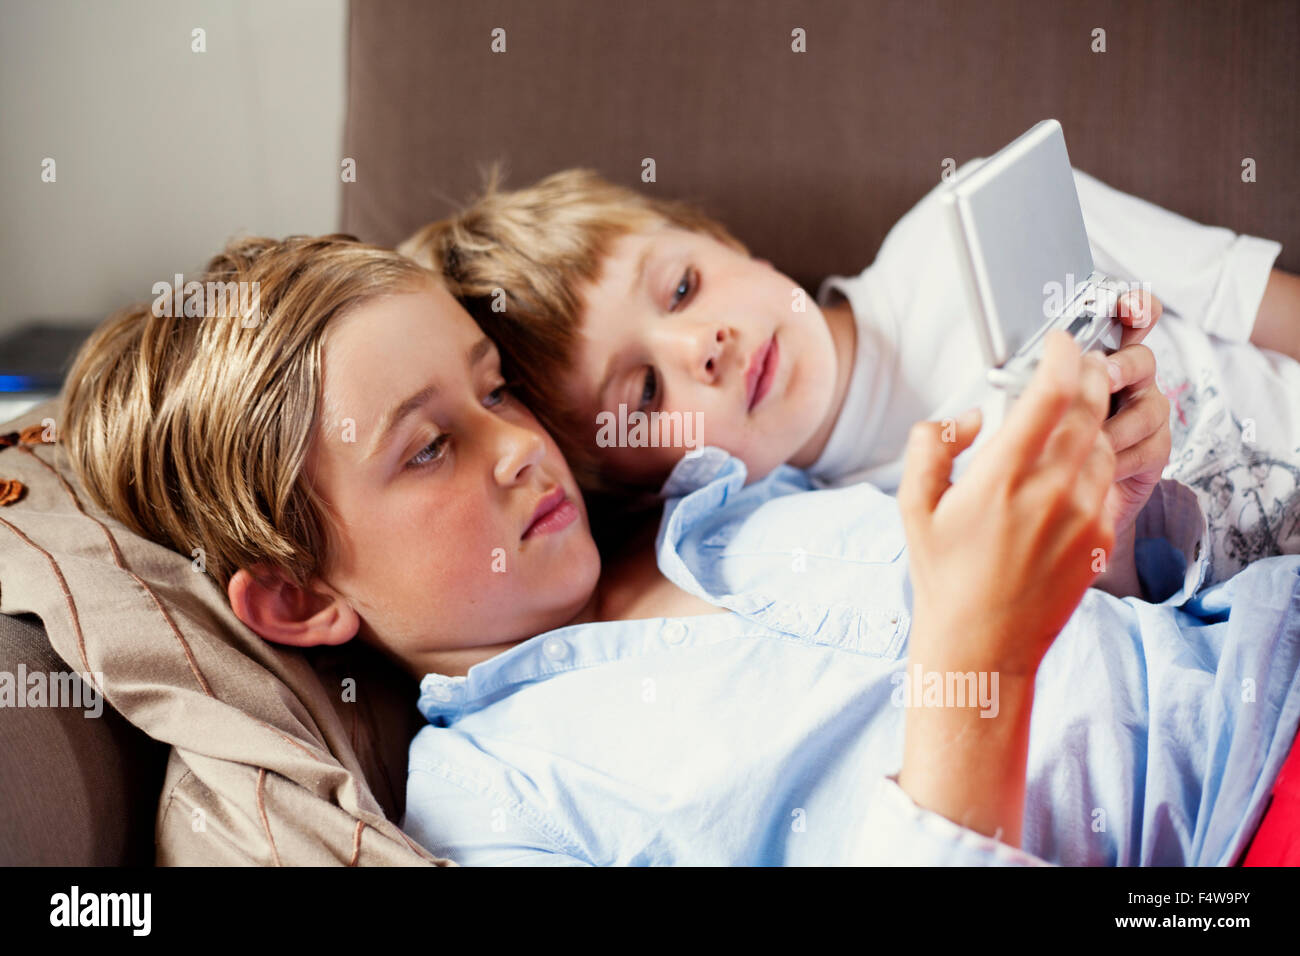 Sweden, Uppland, Runmaro, Barrskar, Brothers (4-5, 6-7) playing on game console - Stock Image